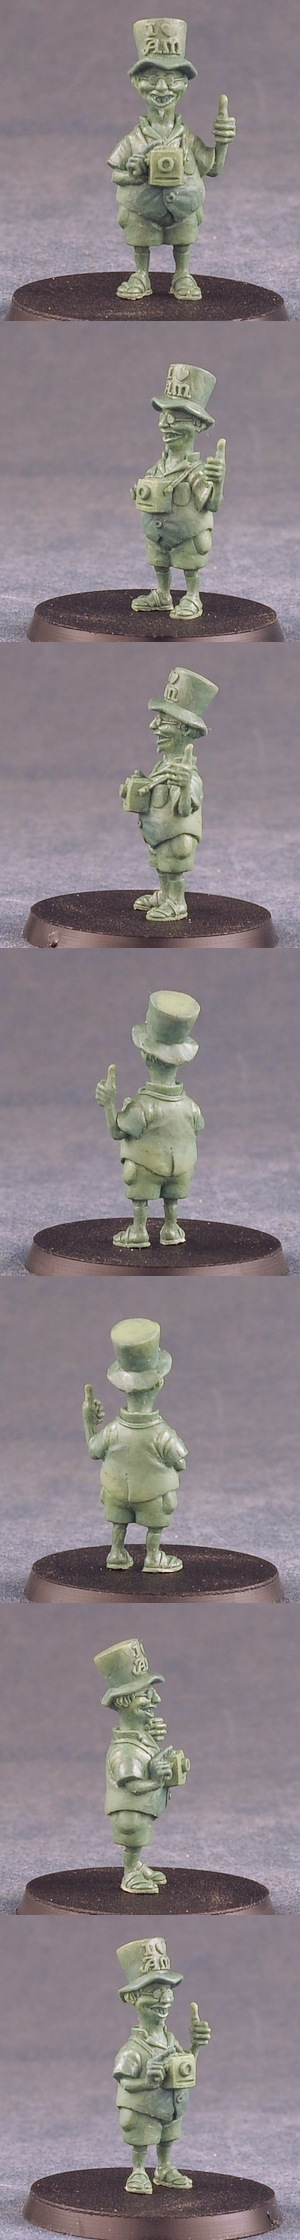 Green for Twoflower of Discworld to be released by MicroArtStudio